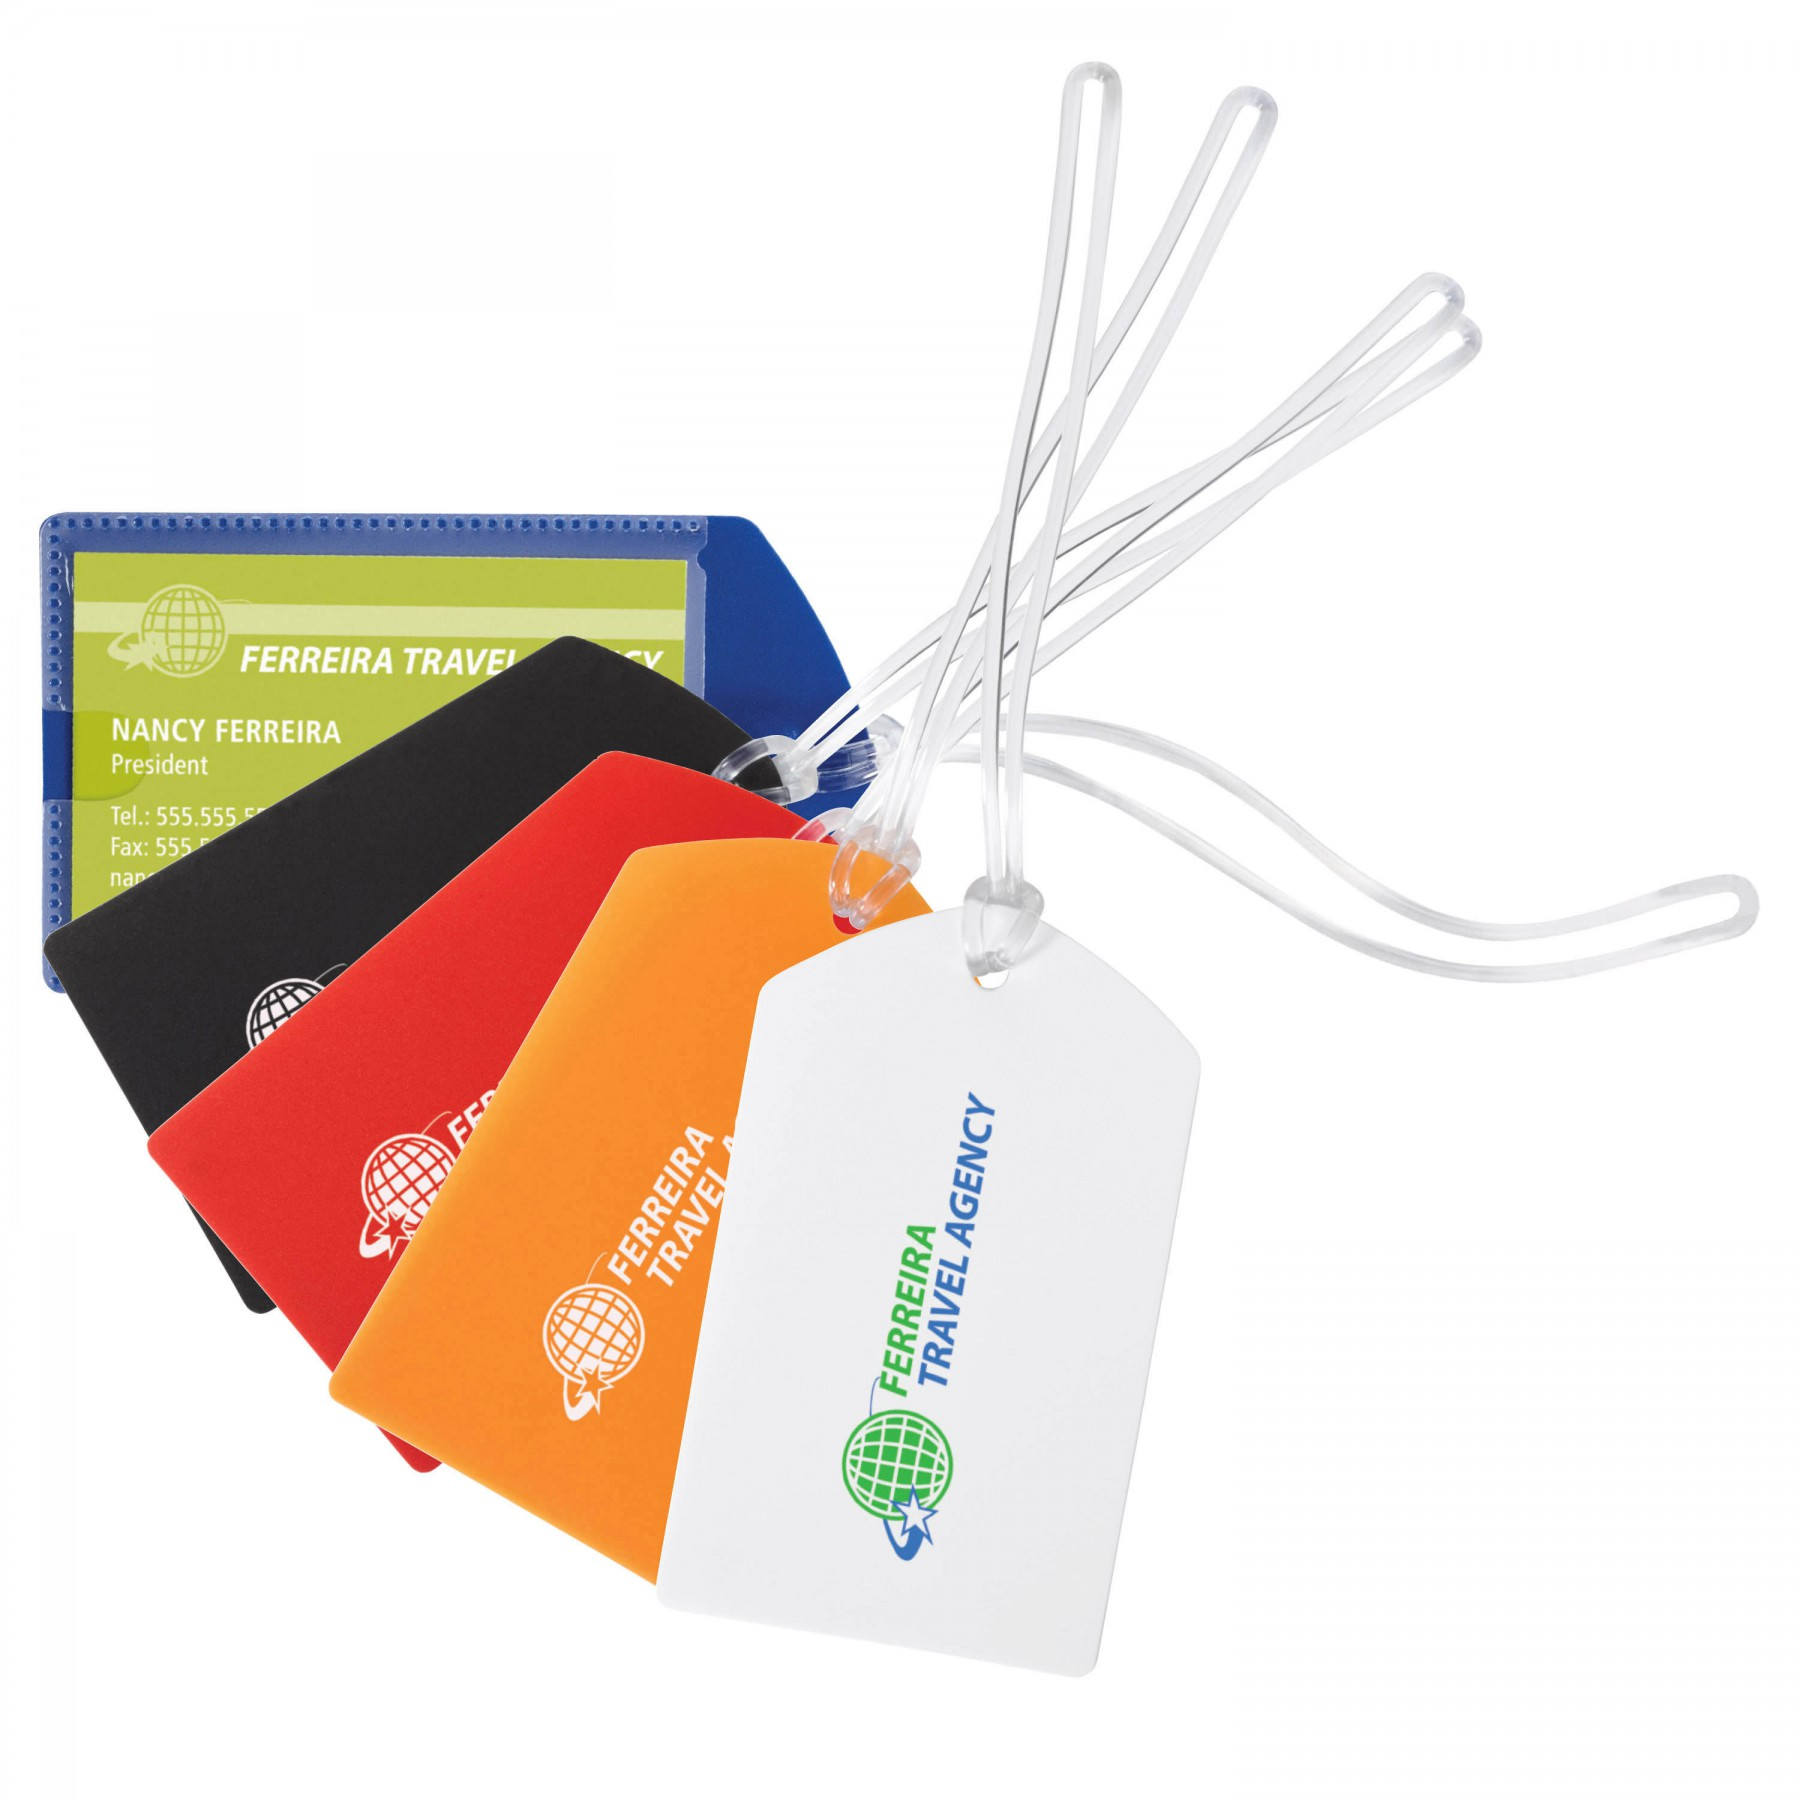 Polypro Luggage Tag - 1 Colour Imprint (G8061)